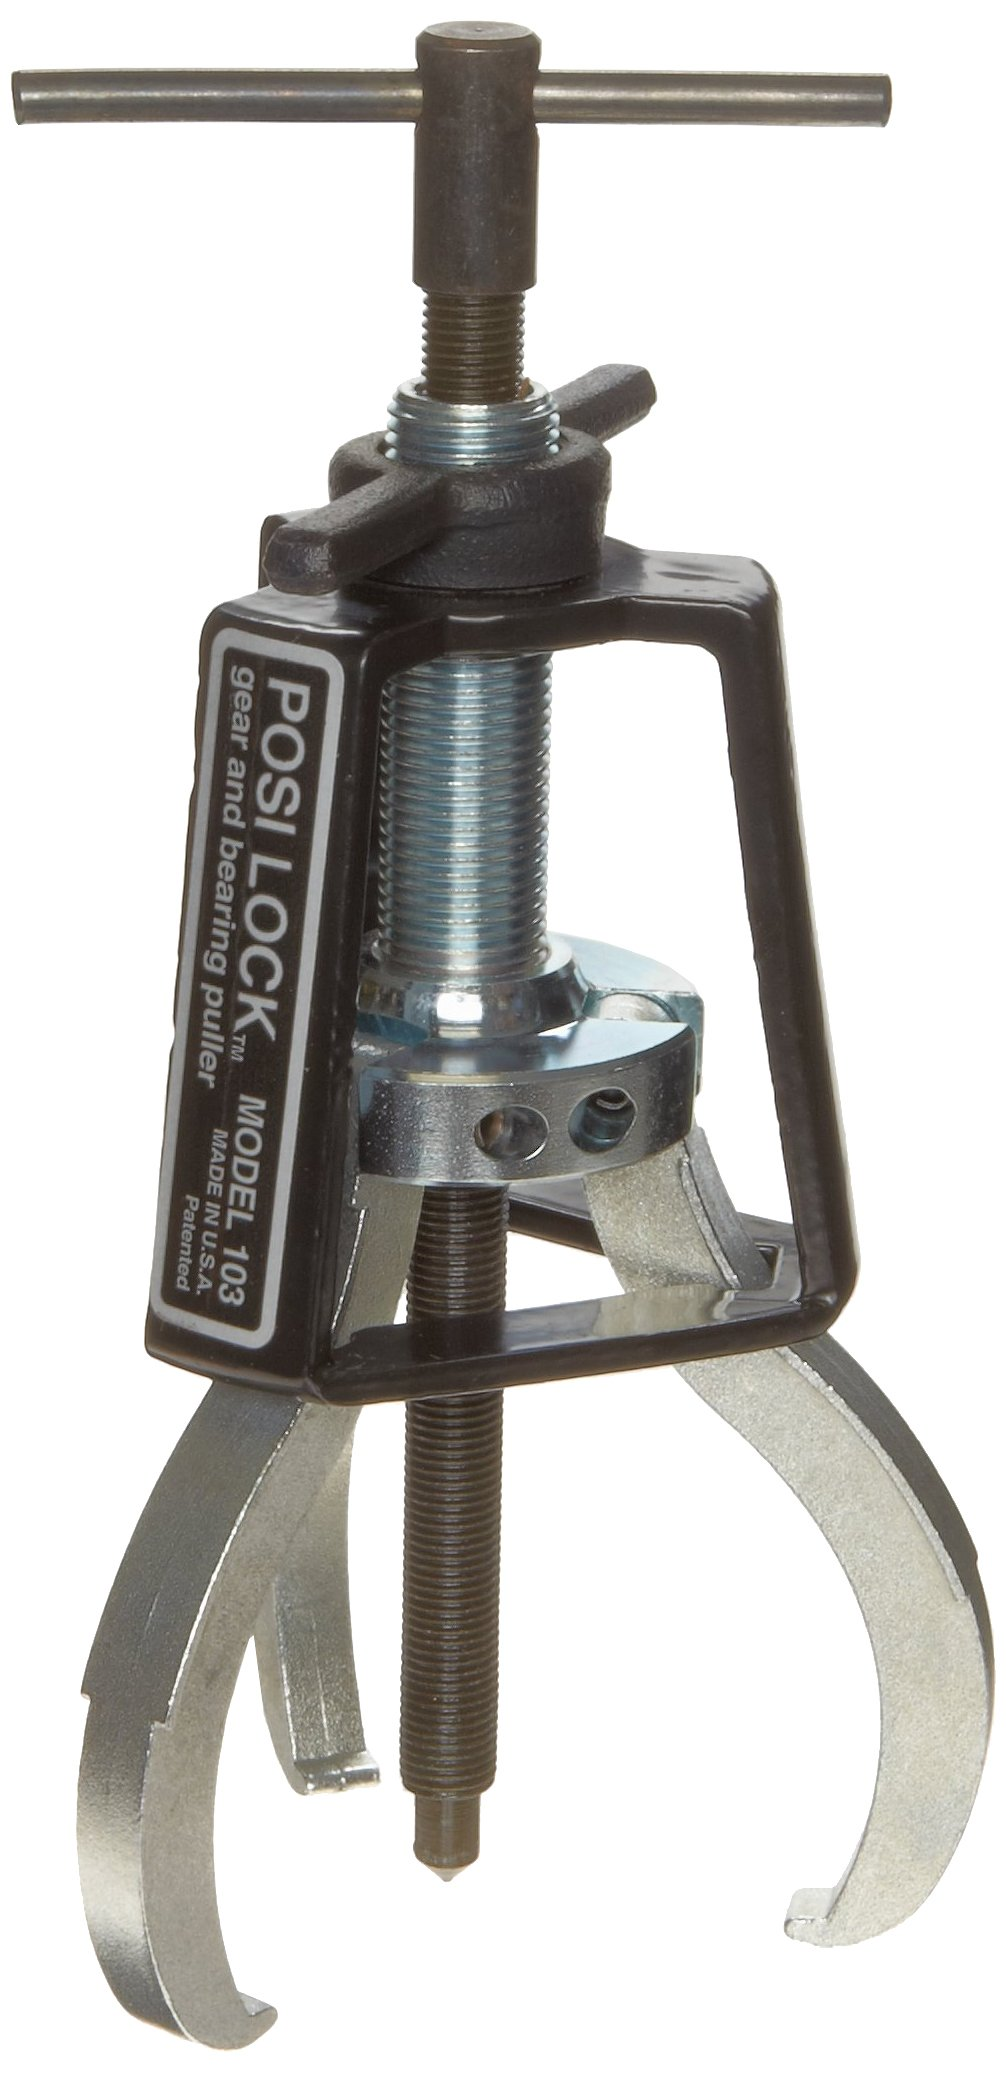 Posi Lock 103 Manual Puller, 3 Jaws, 2 tons Capacity, 3'' Reach, 1/4'' - 4-1/4'' Spread Range, 7'' Overall Length